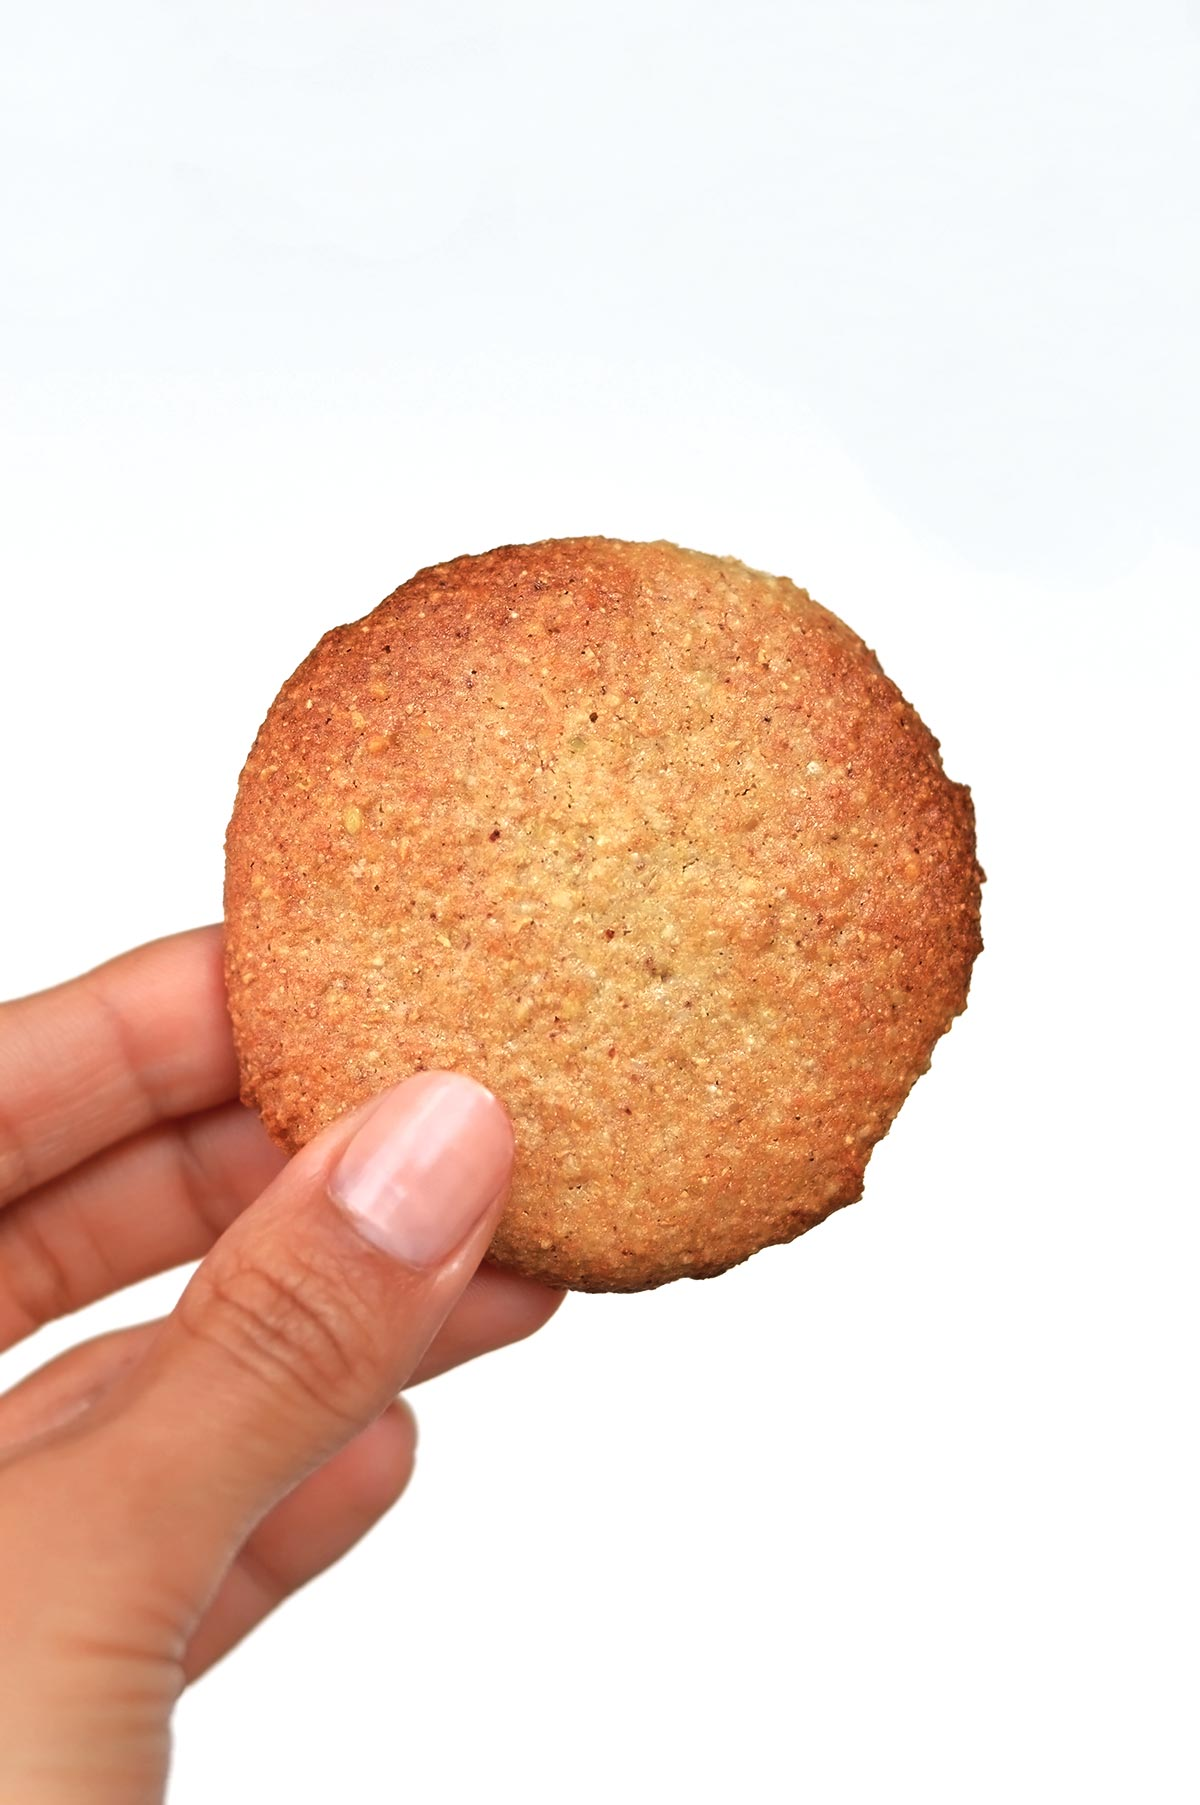 gluten-free and oil-free cookies